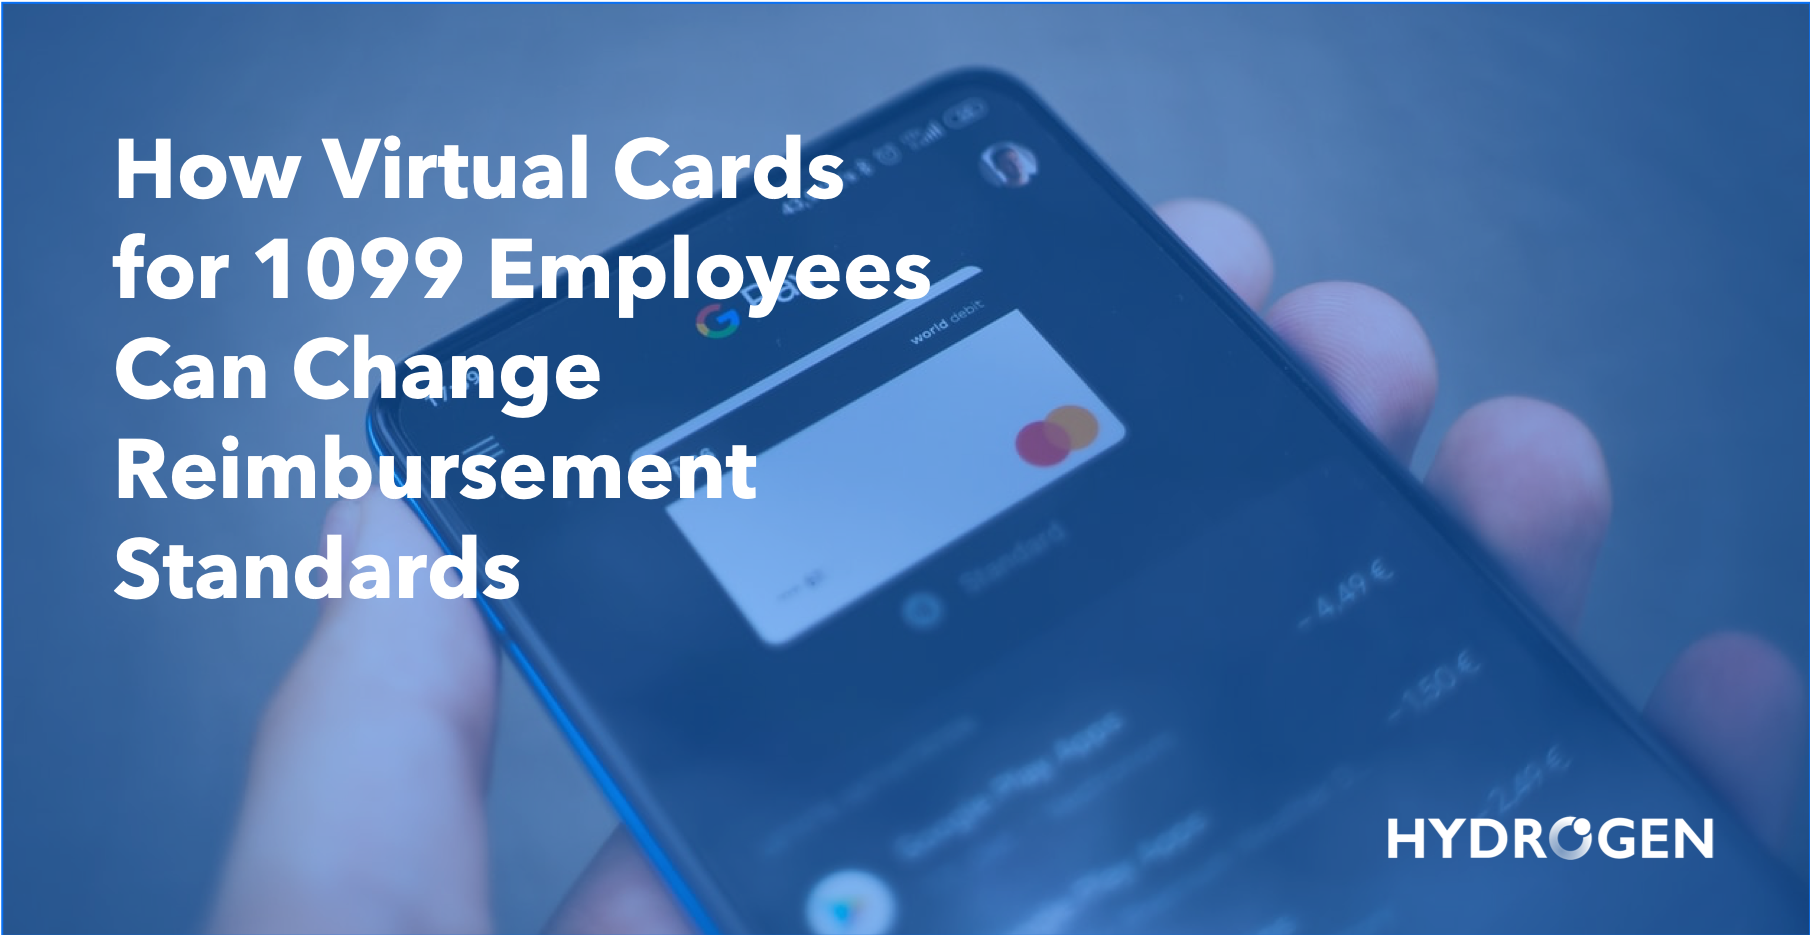 How Virtual Cards for 1099 Employees Can Change Reimbursement Standards